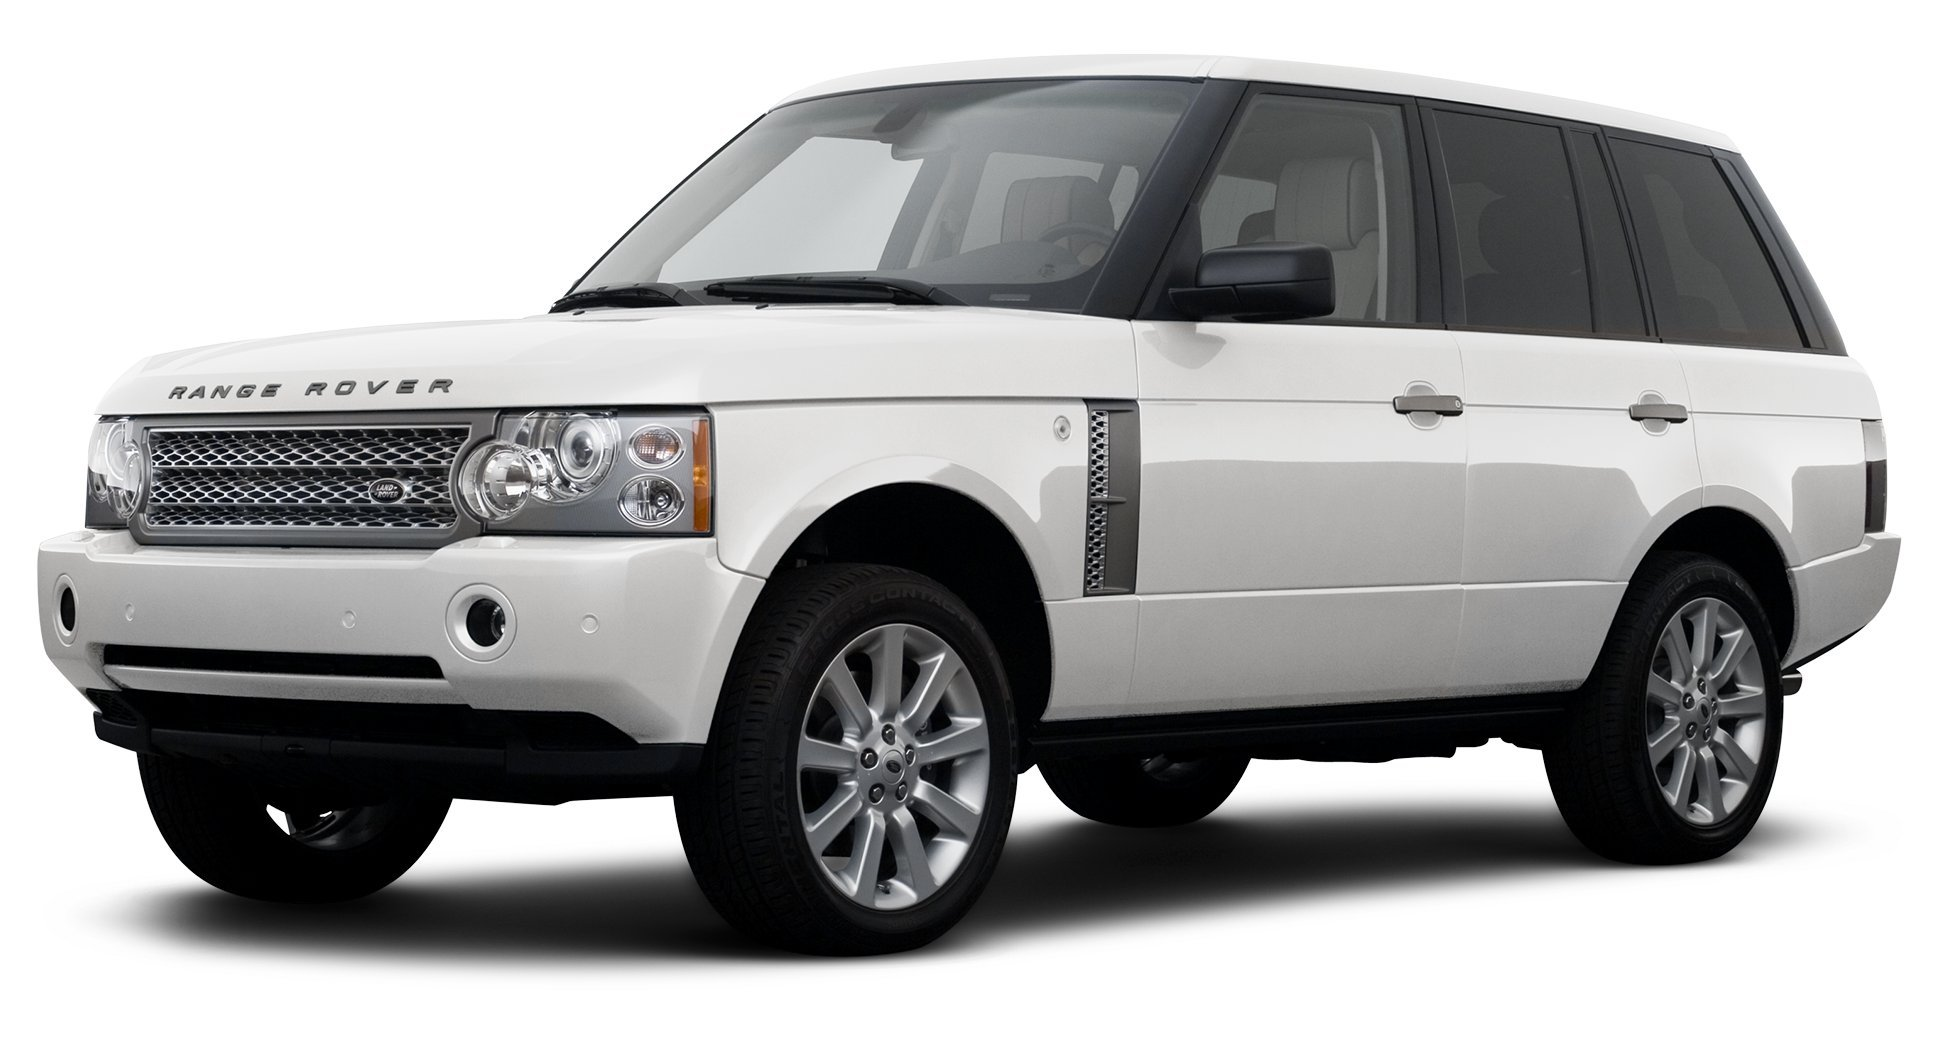 2008 Land Rover Range Rover HSE, 4-Wheel Drive 4-Door ...